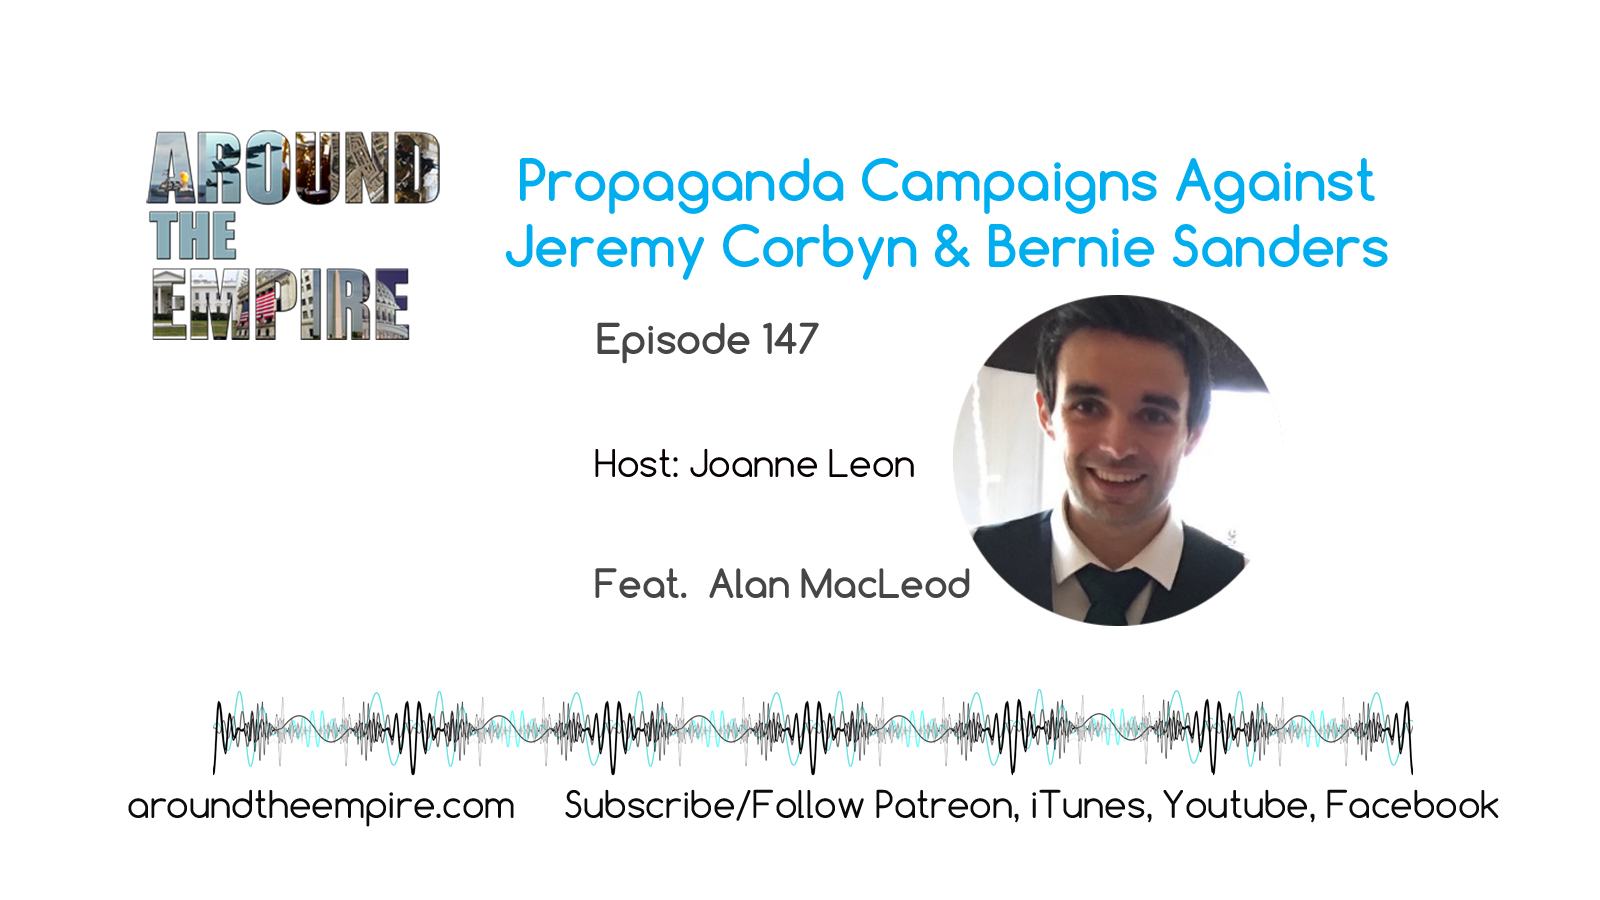 Ep 147 Propaganda Campaigns Against Jeremy Corbyn and Bernie Sanders feat Alan MacLeod